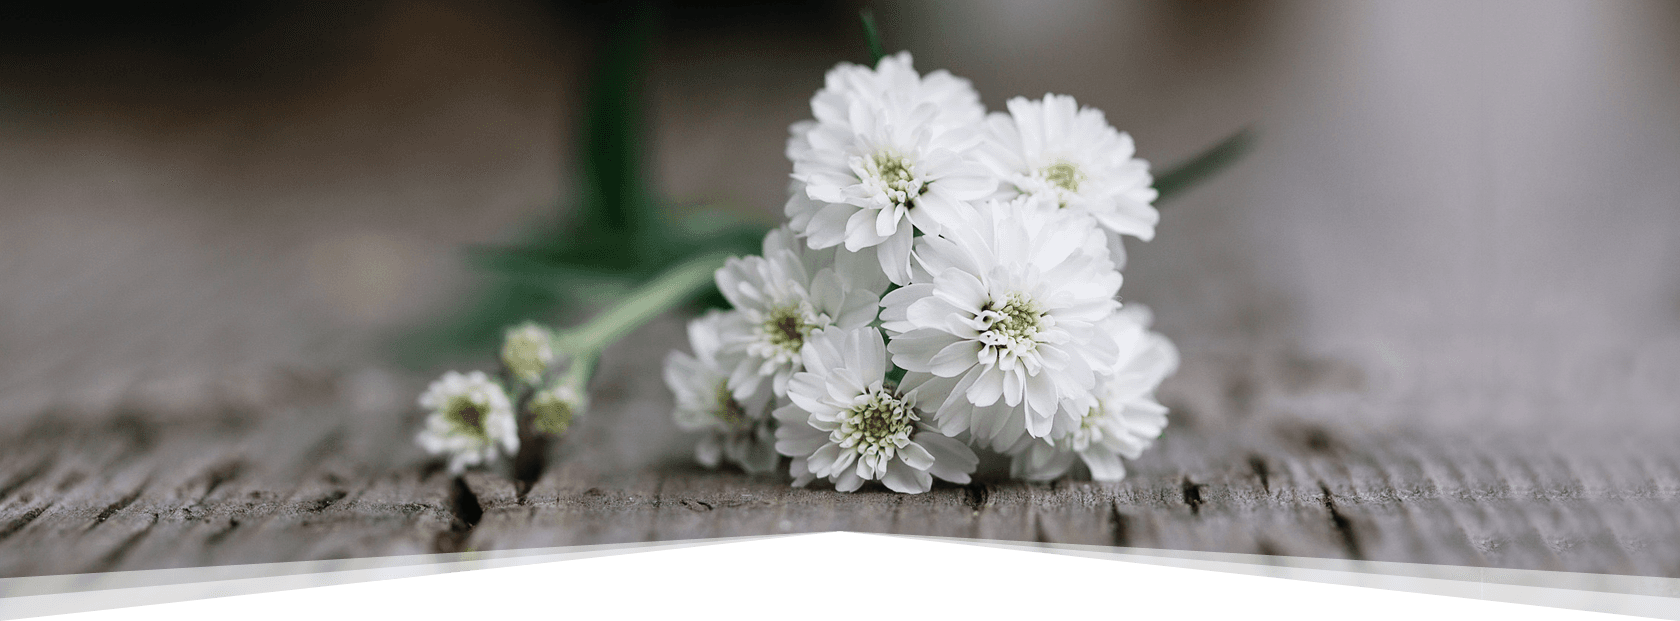 Funeral plans by funeral directors in south wigston white flower izmirmasajfo